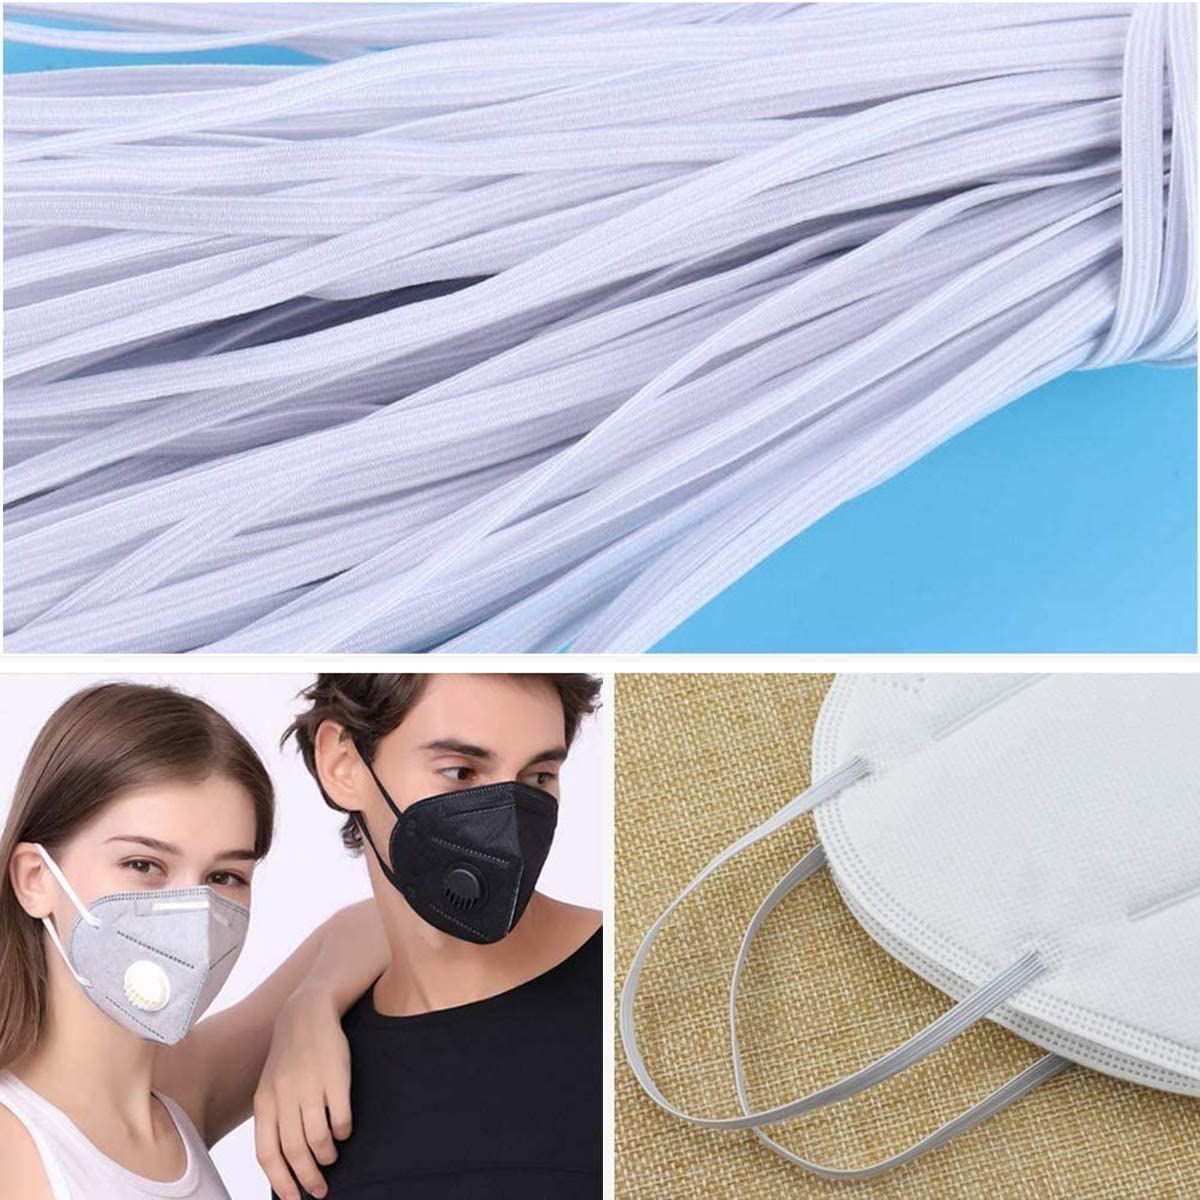 Rubber Band High Elasticity Home Textile Shrink Resistant Latex Free Accessories